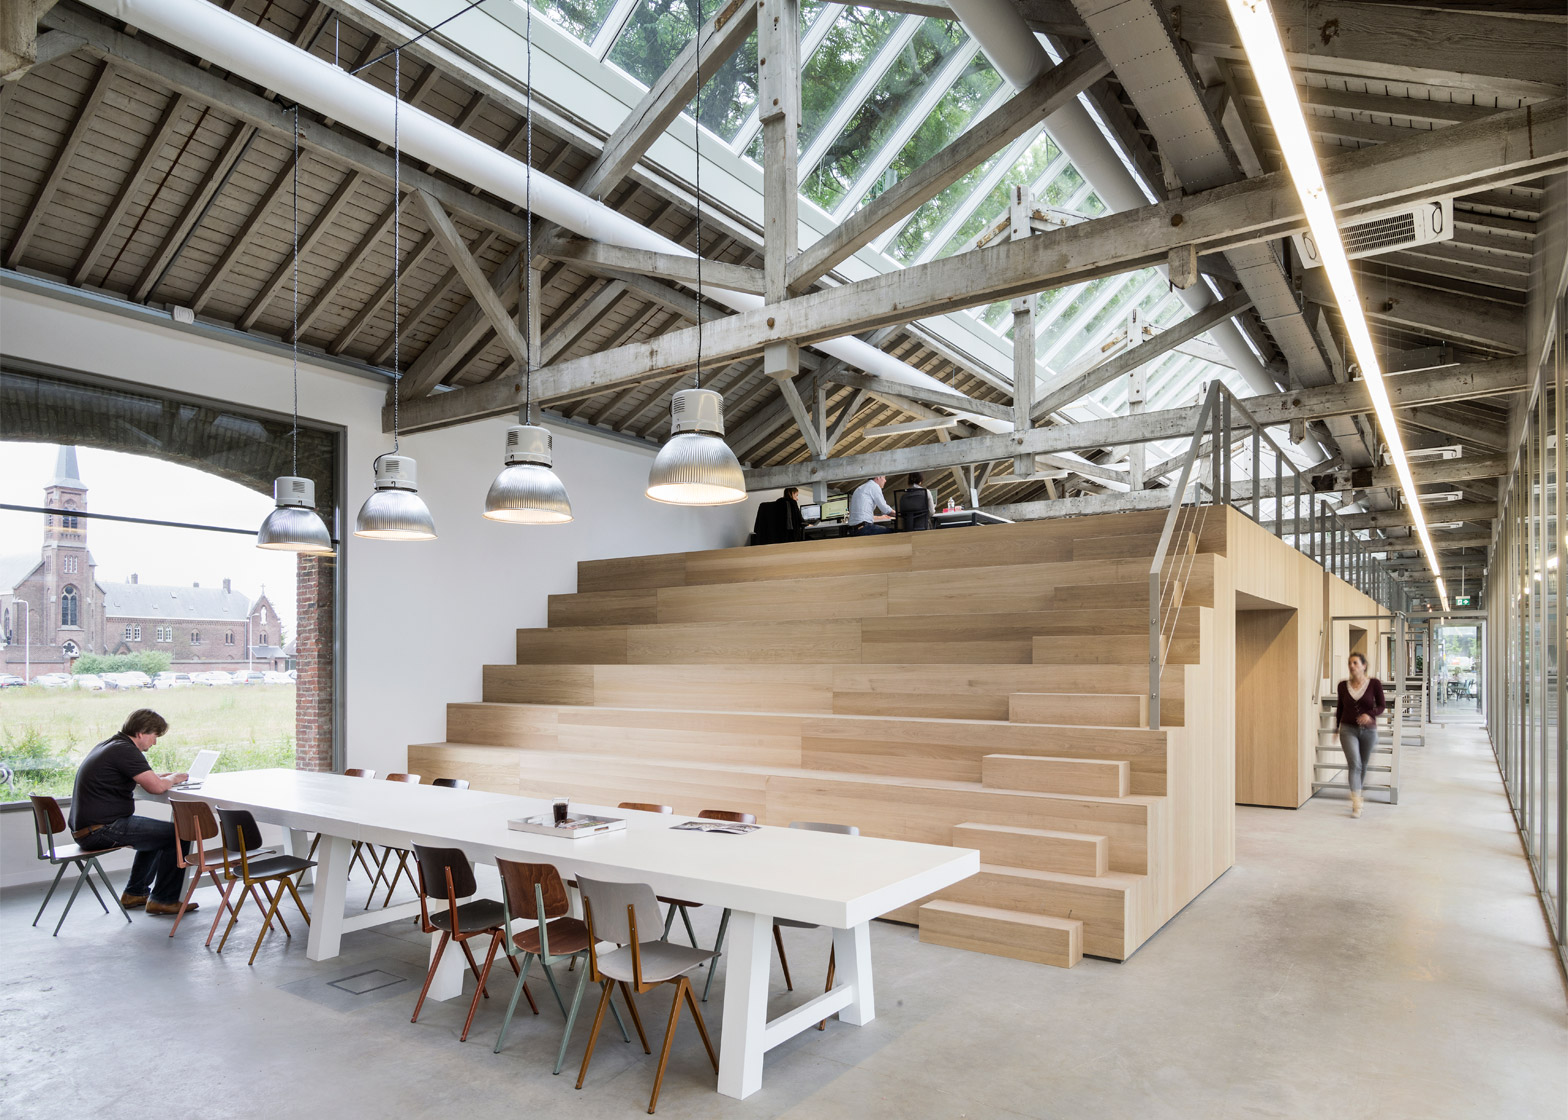 Brouwer Meubelen Bedaux De Brouwer Transforms Railway Warehouse Into Office